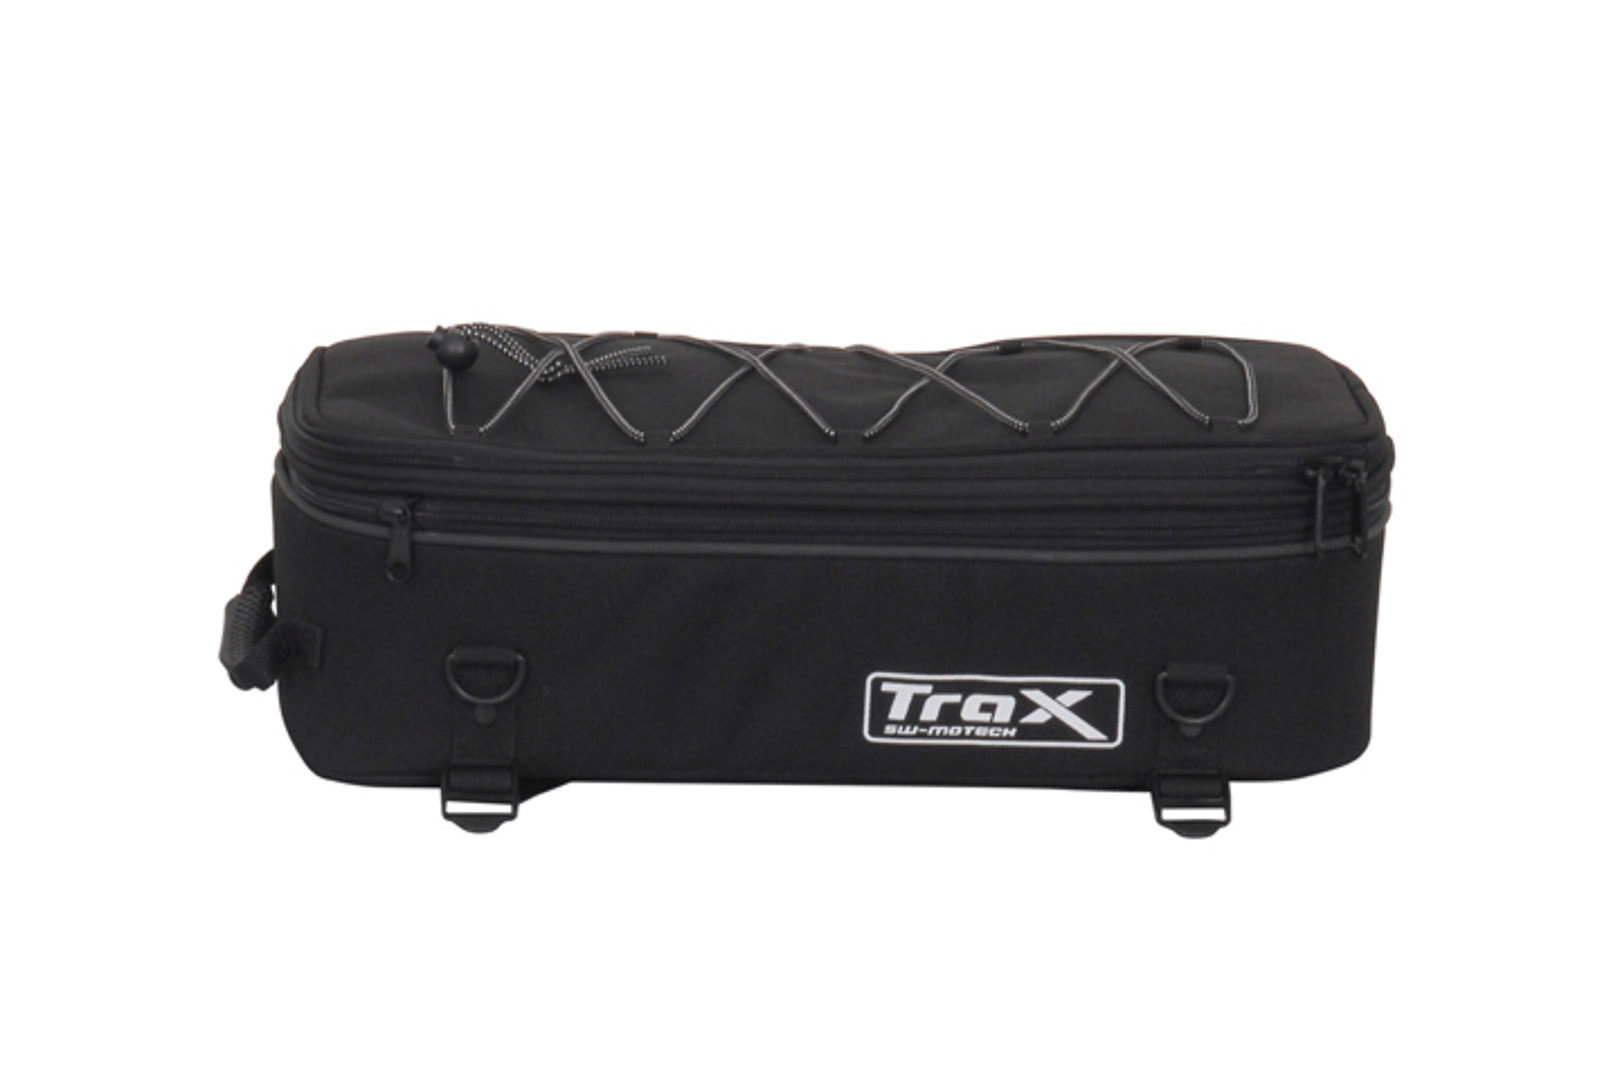 SW-Motech Trax Expansionbag Alubox 45/37L 600D Nylon musta